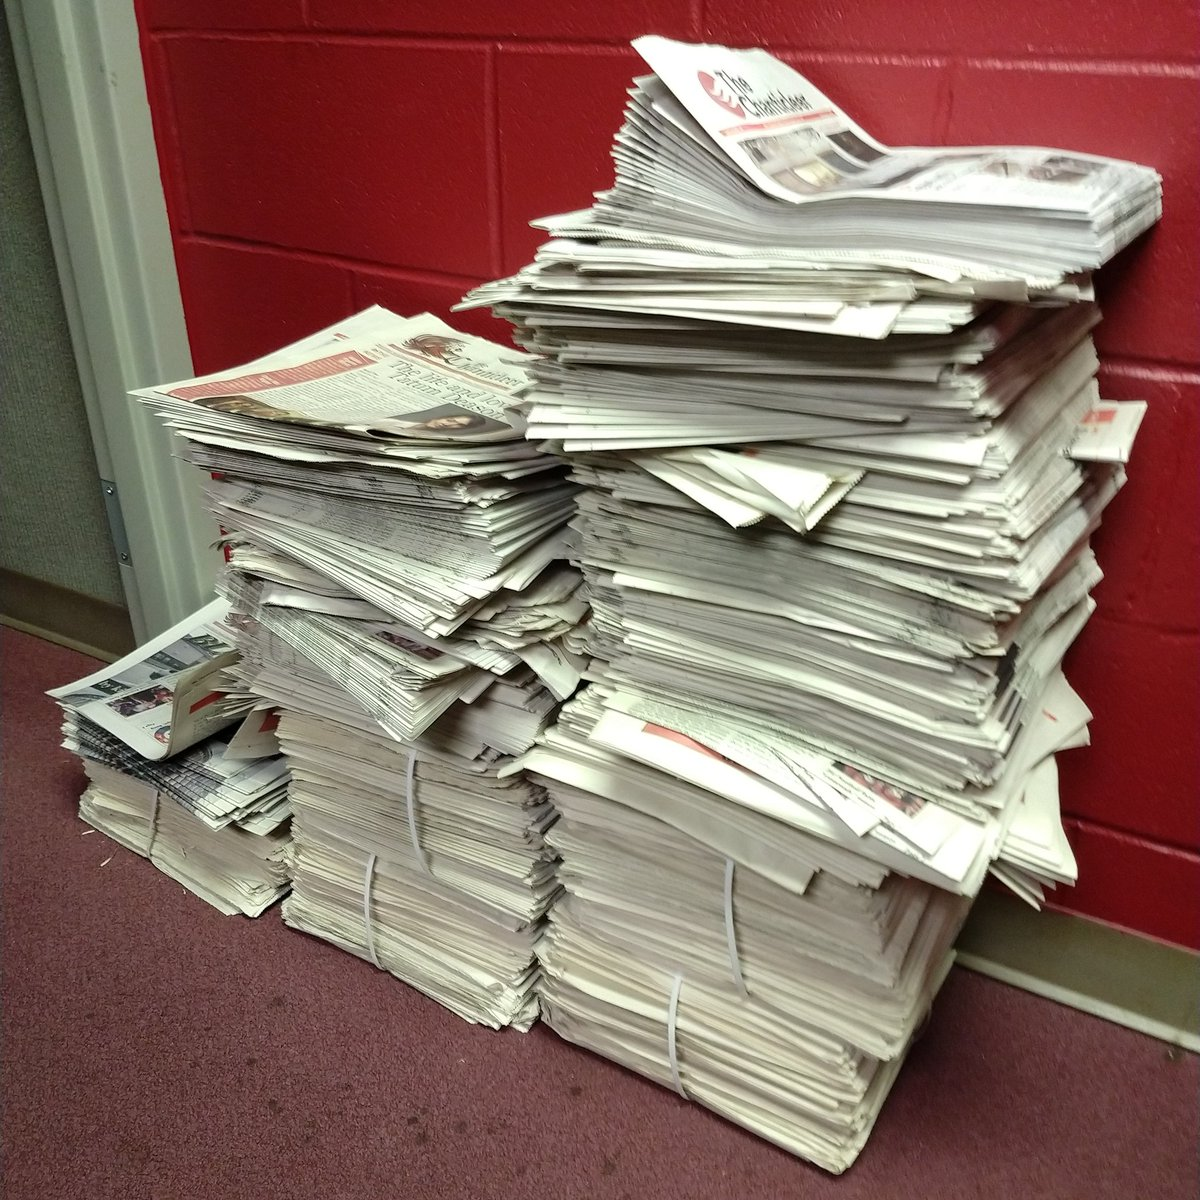 If you don't pick up an issue of The Chanticleer today, our office might get even messier! Do the right thing, JSU!  #ChantyDay